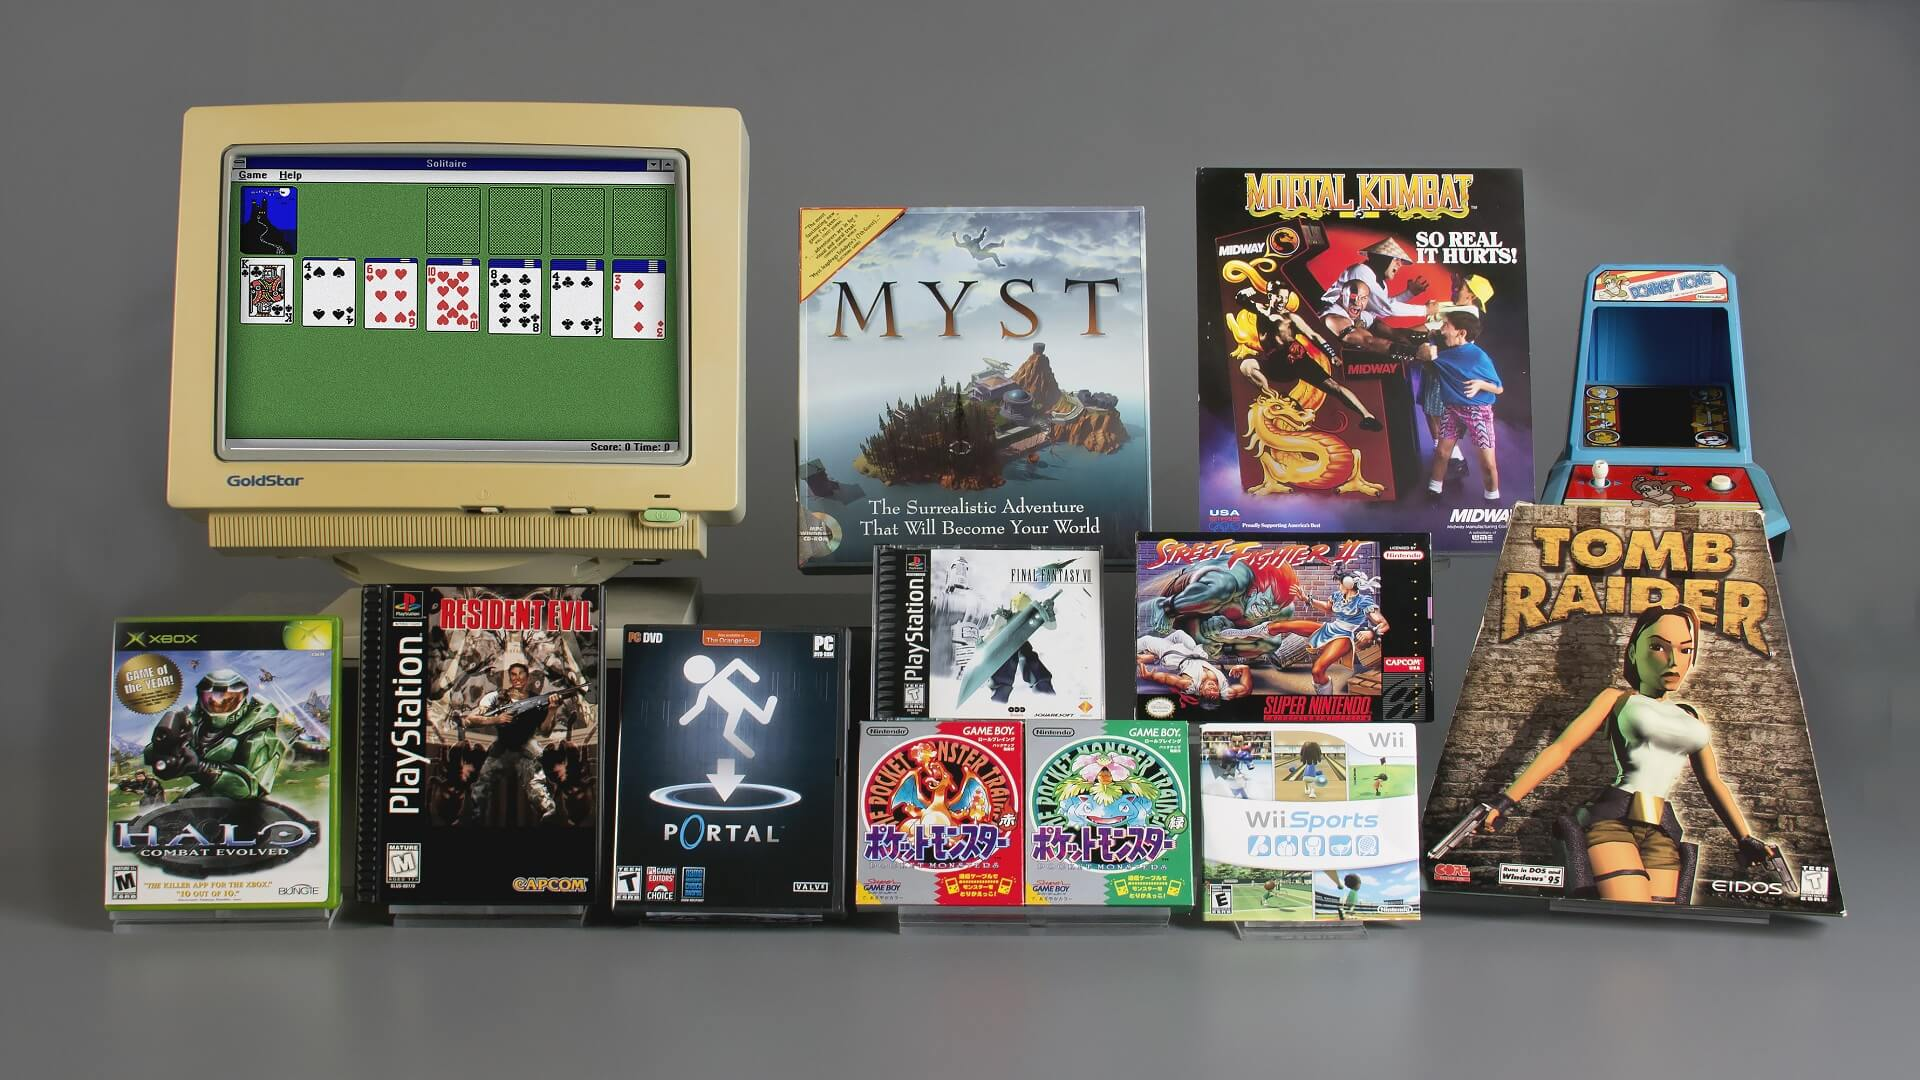 Why Are Games Inducted Into The World Video Games Hall Of Fame?